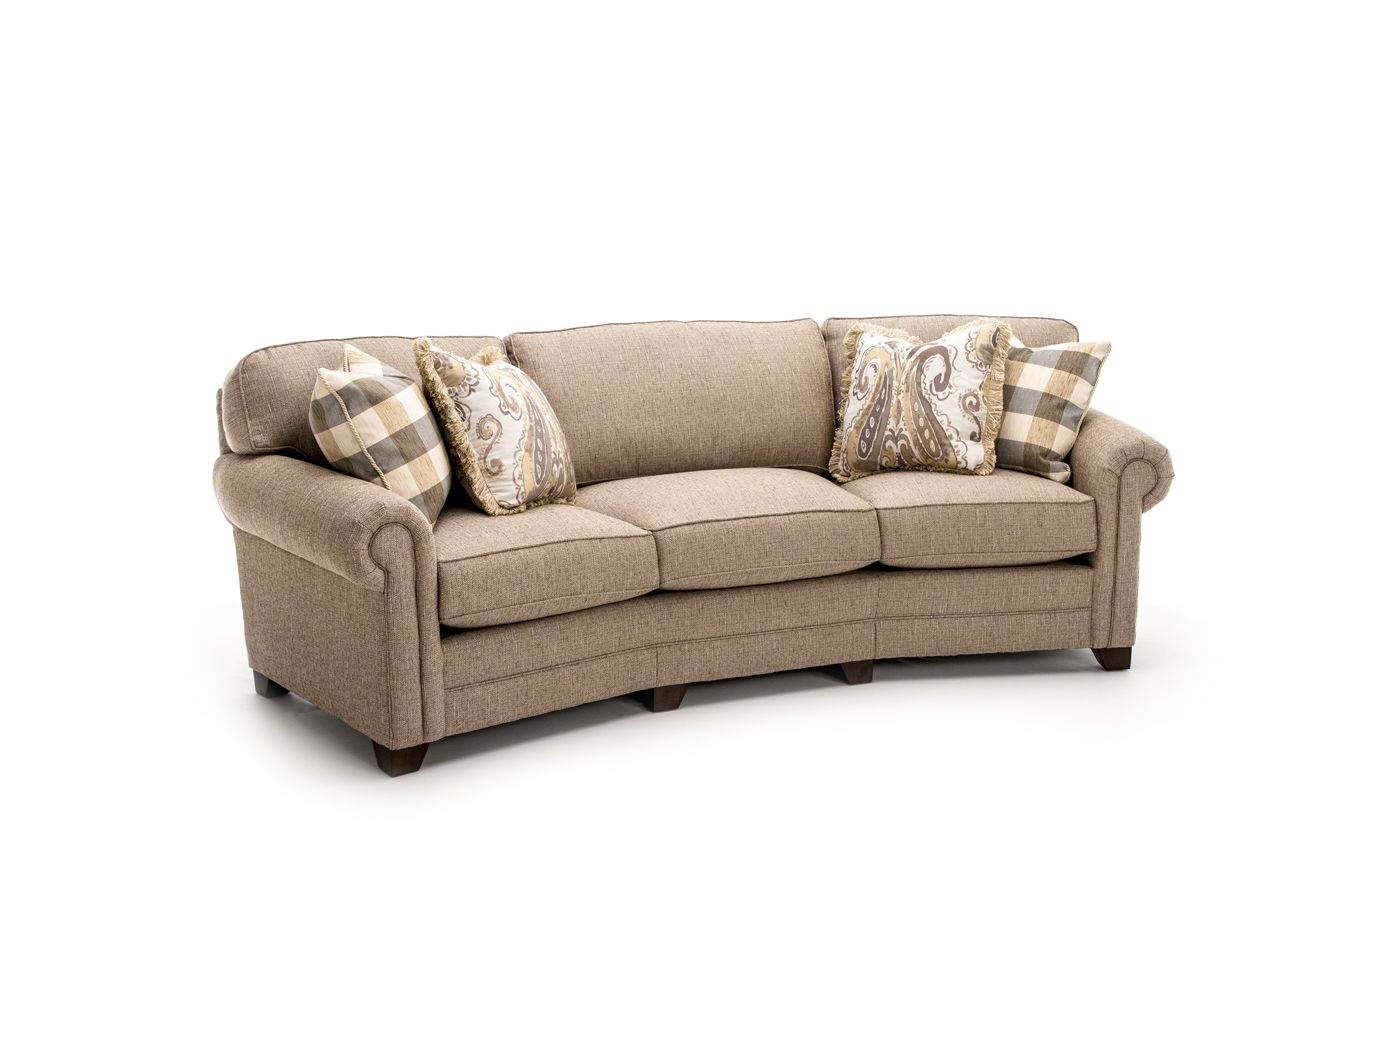 bentley sofa by king hickory stretch leather slipcover conversation steinhafels